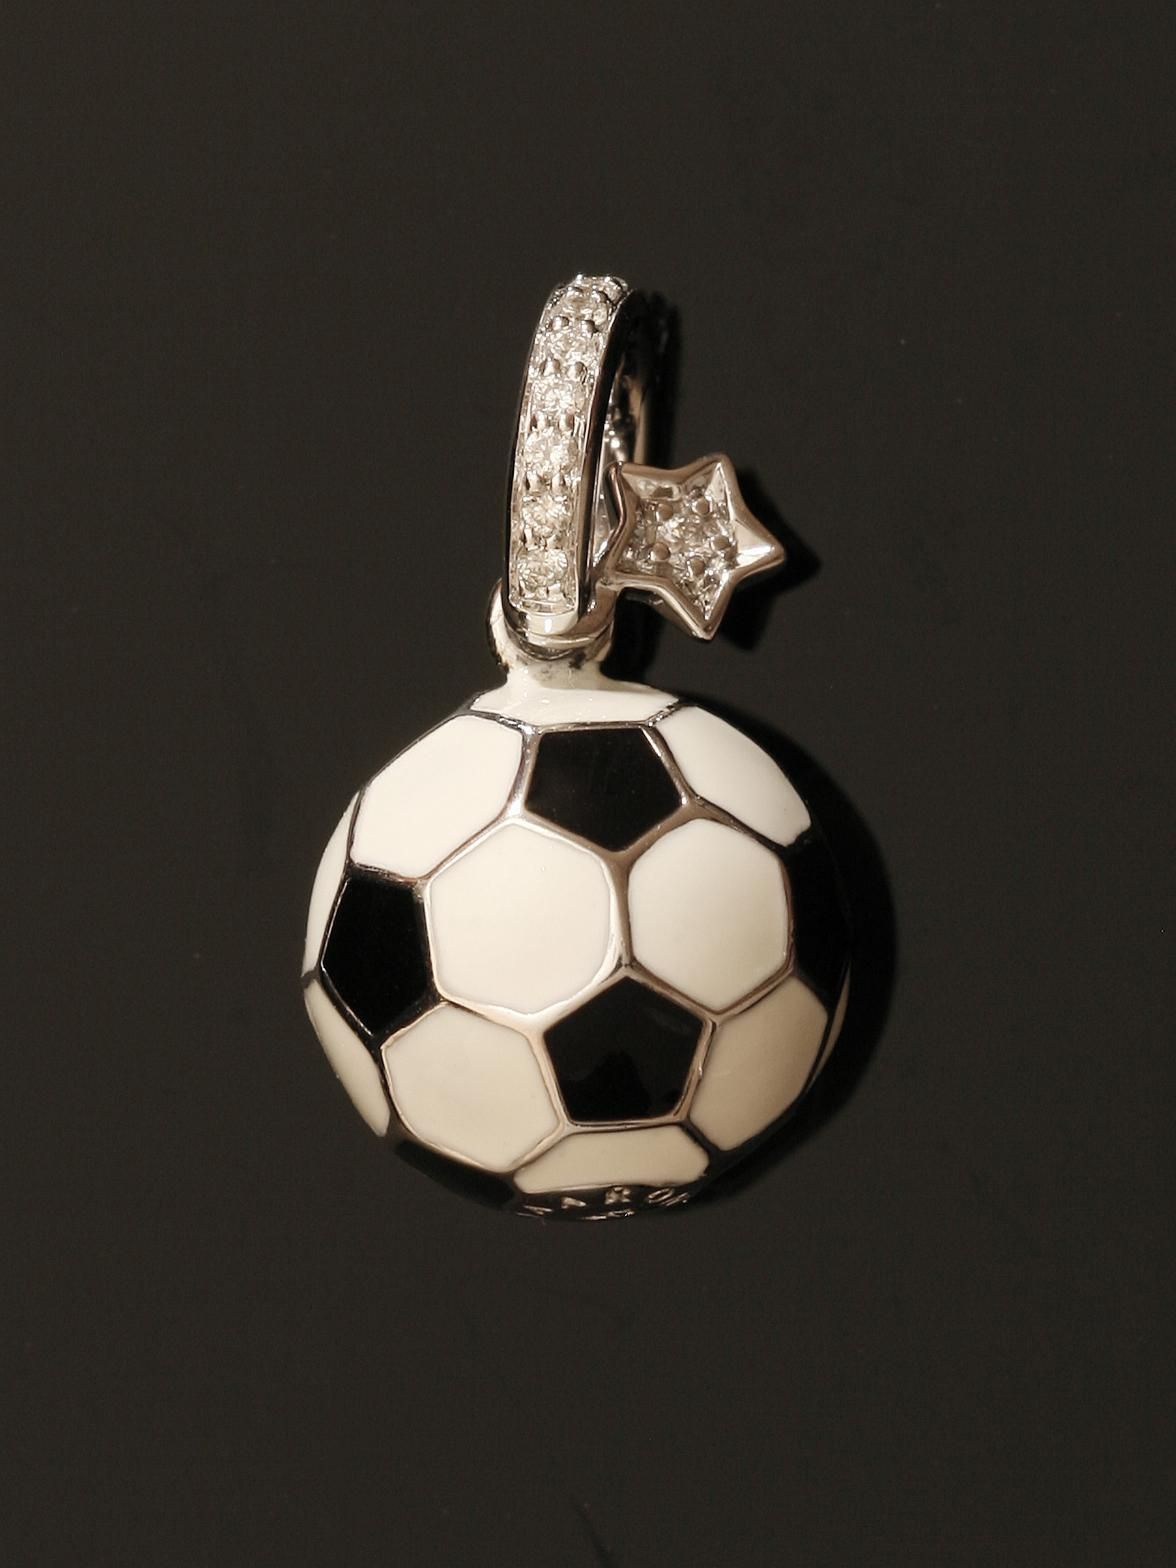 Well isn't that pretty.... Aaron Basha 18k Soccer Ball. 18k White Gold Soccer Ball Black and White with a Diamond Bail and Diamond Hanging Star. Available at London Jewelers.